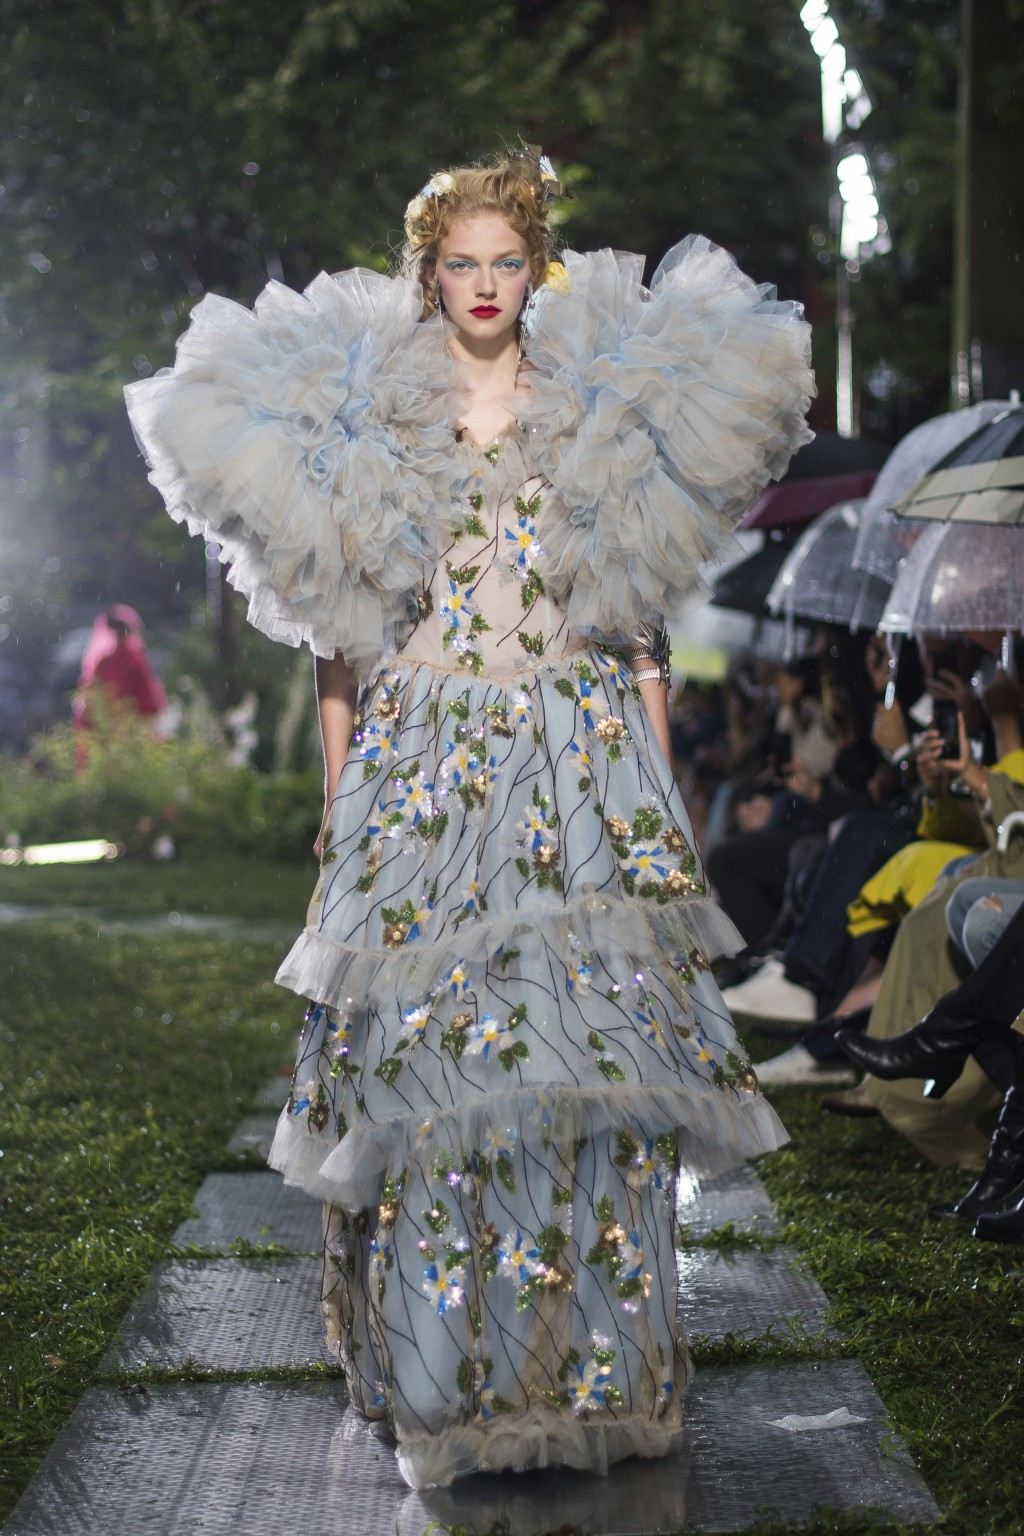 A model walks in the Rodarte show, which was held outside in the rain, during Fashion Week on Sunday, Sept. 9, 2018 in New York. (Photo by Charles Syk